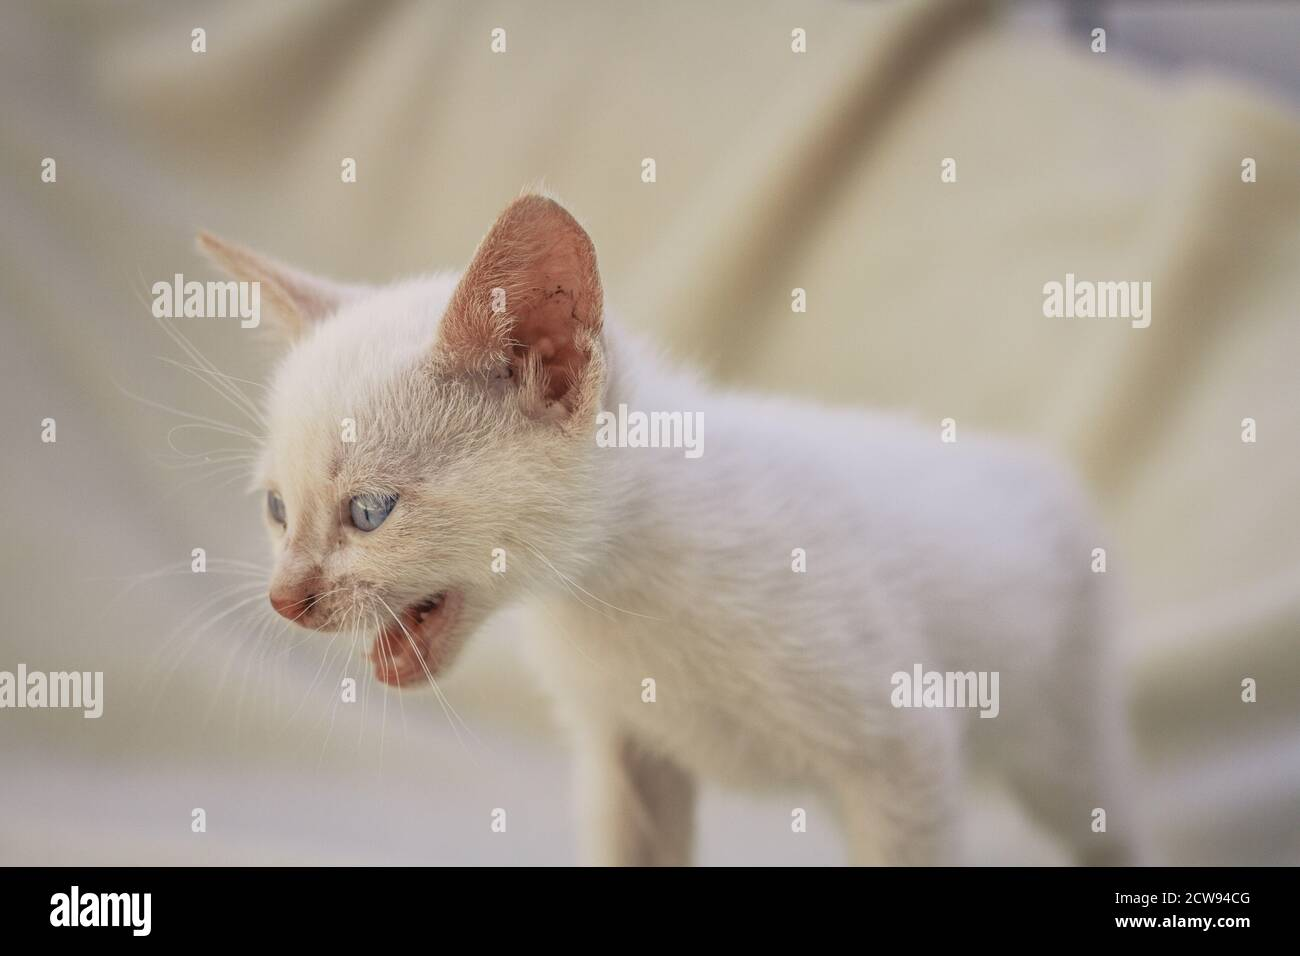 White fluffy puppy cat meowing Stock Photo